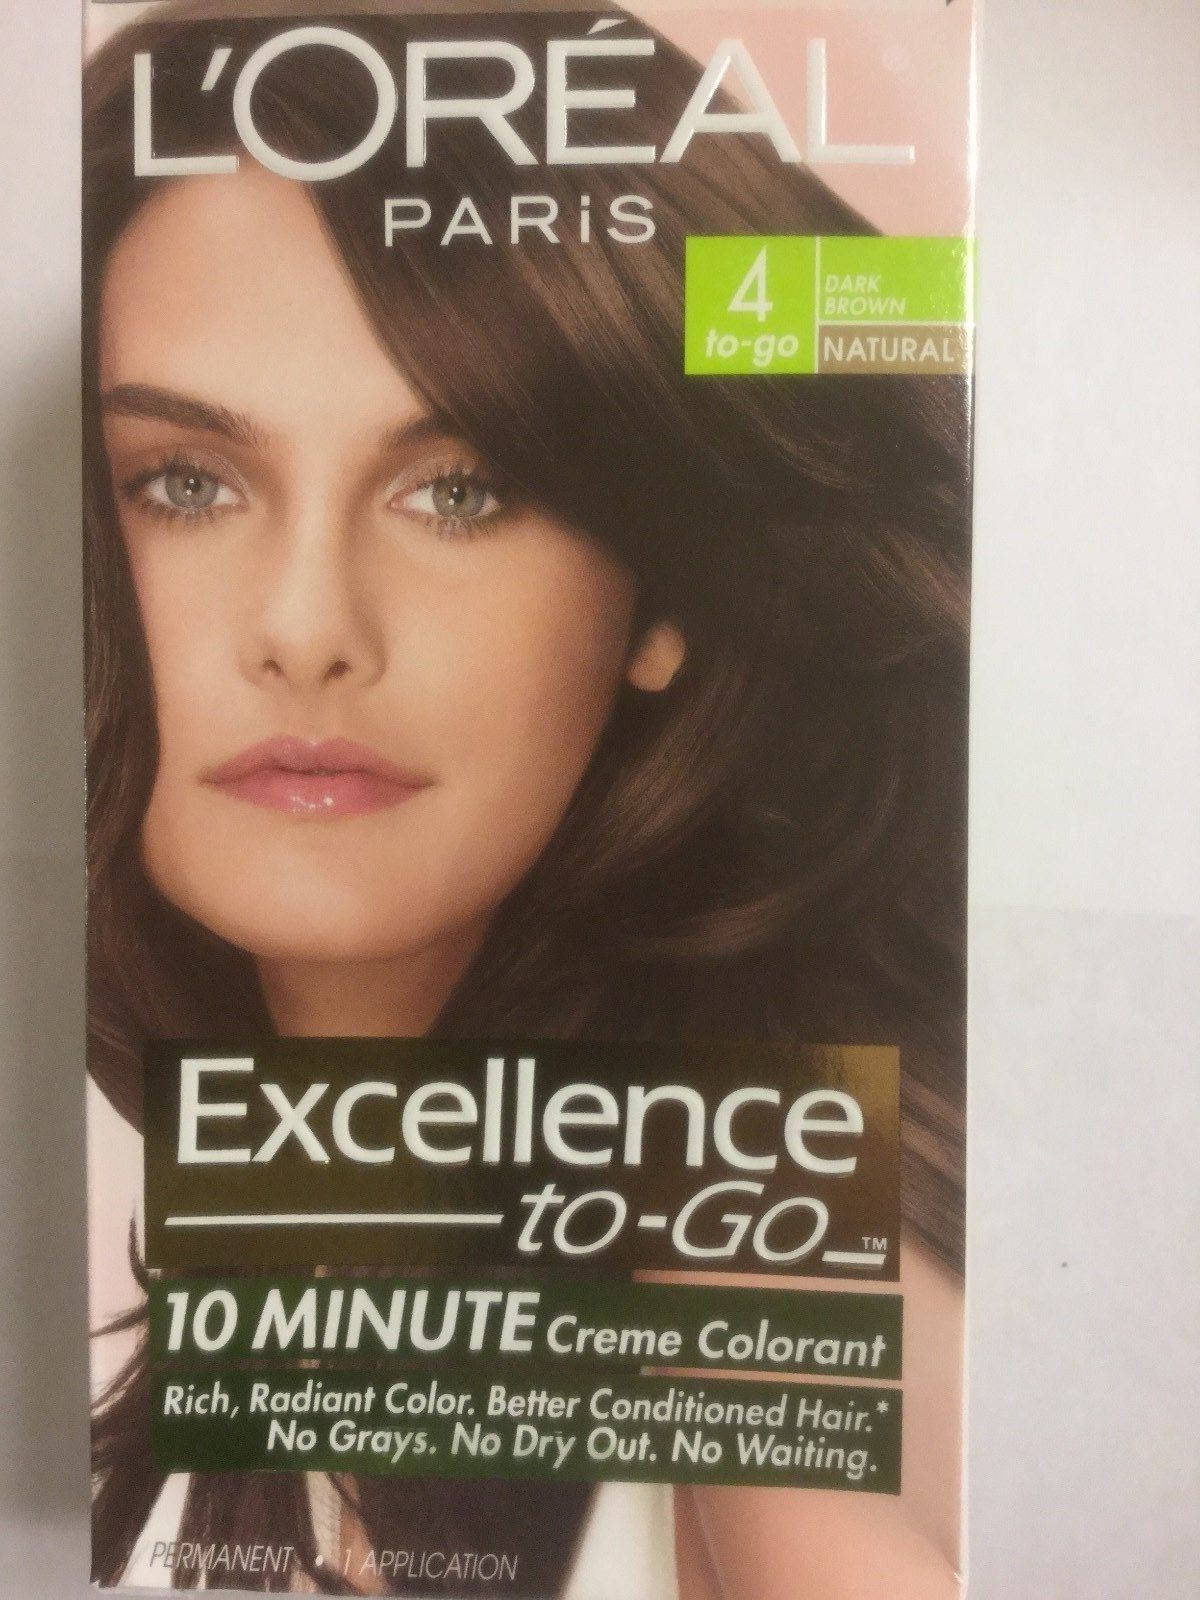 Loreal Paris Excellence To Go 10 Minute Crme Coloring Dark Brown